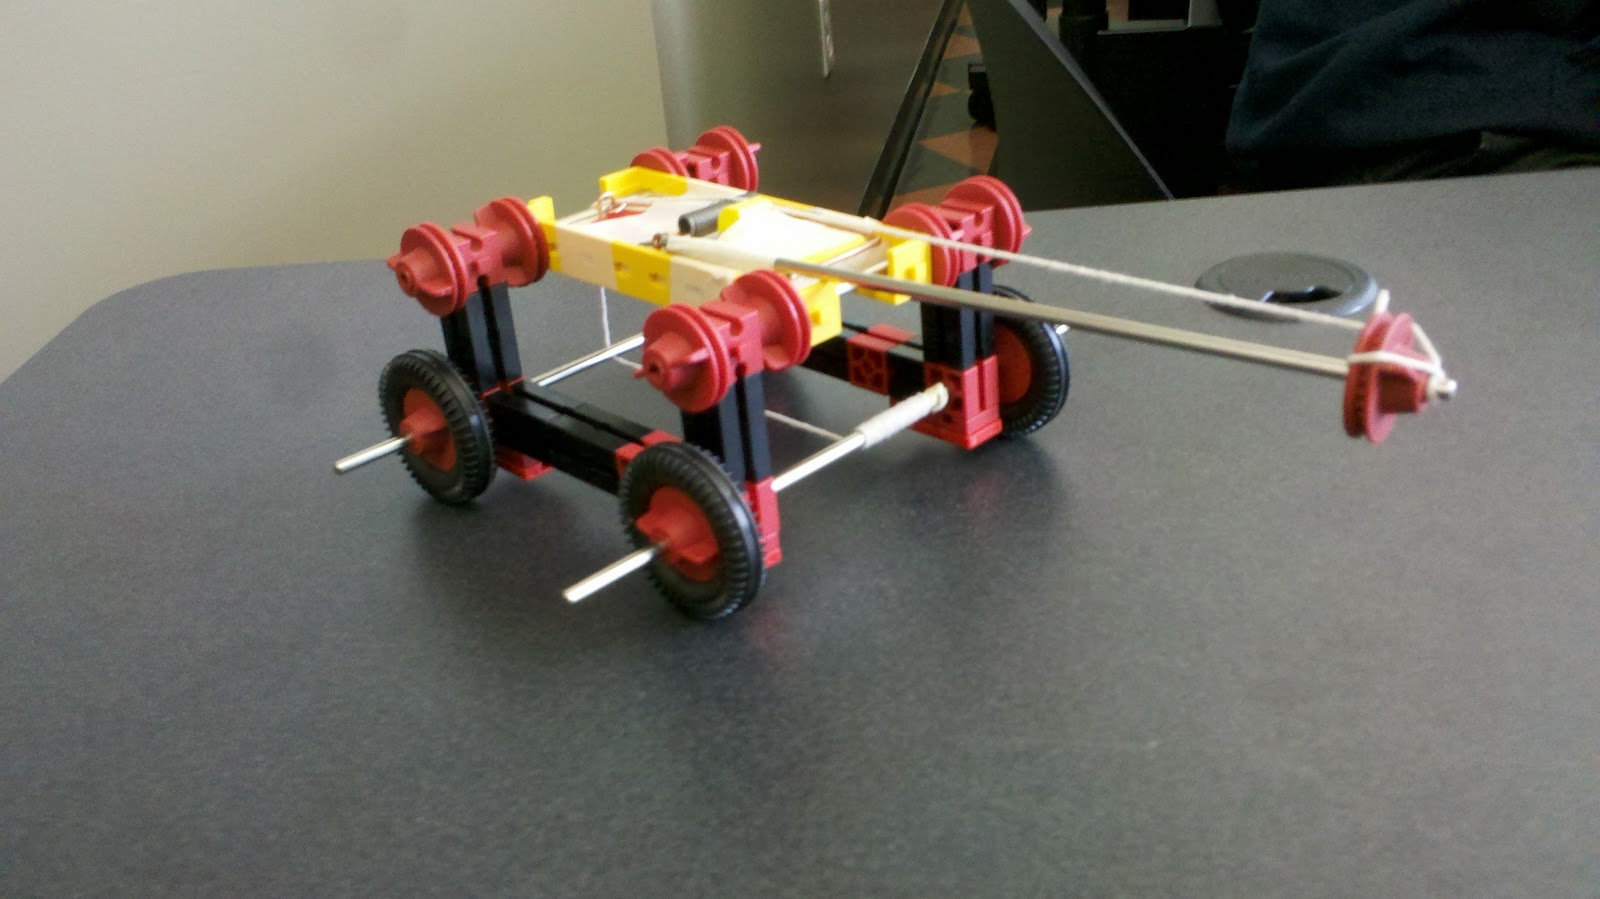 Technological designs simple machine challenge 1 mousetrap racecar